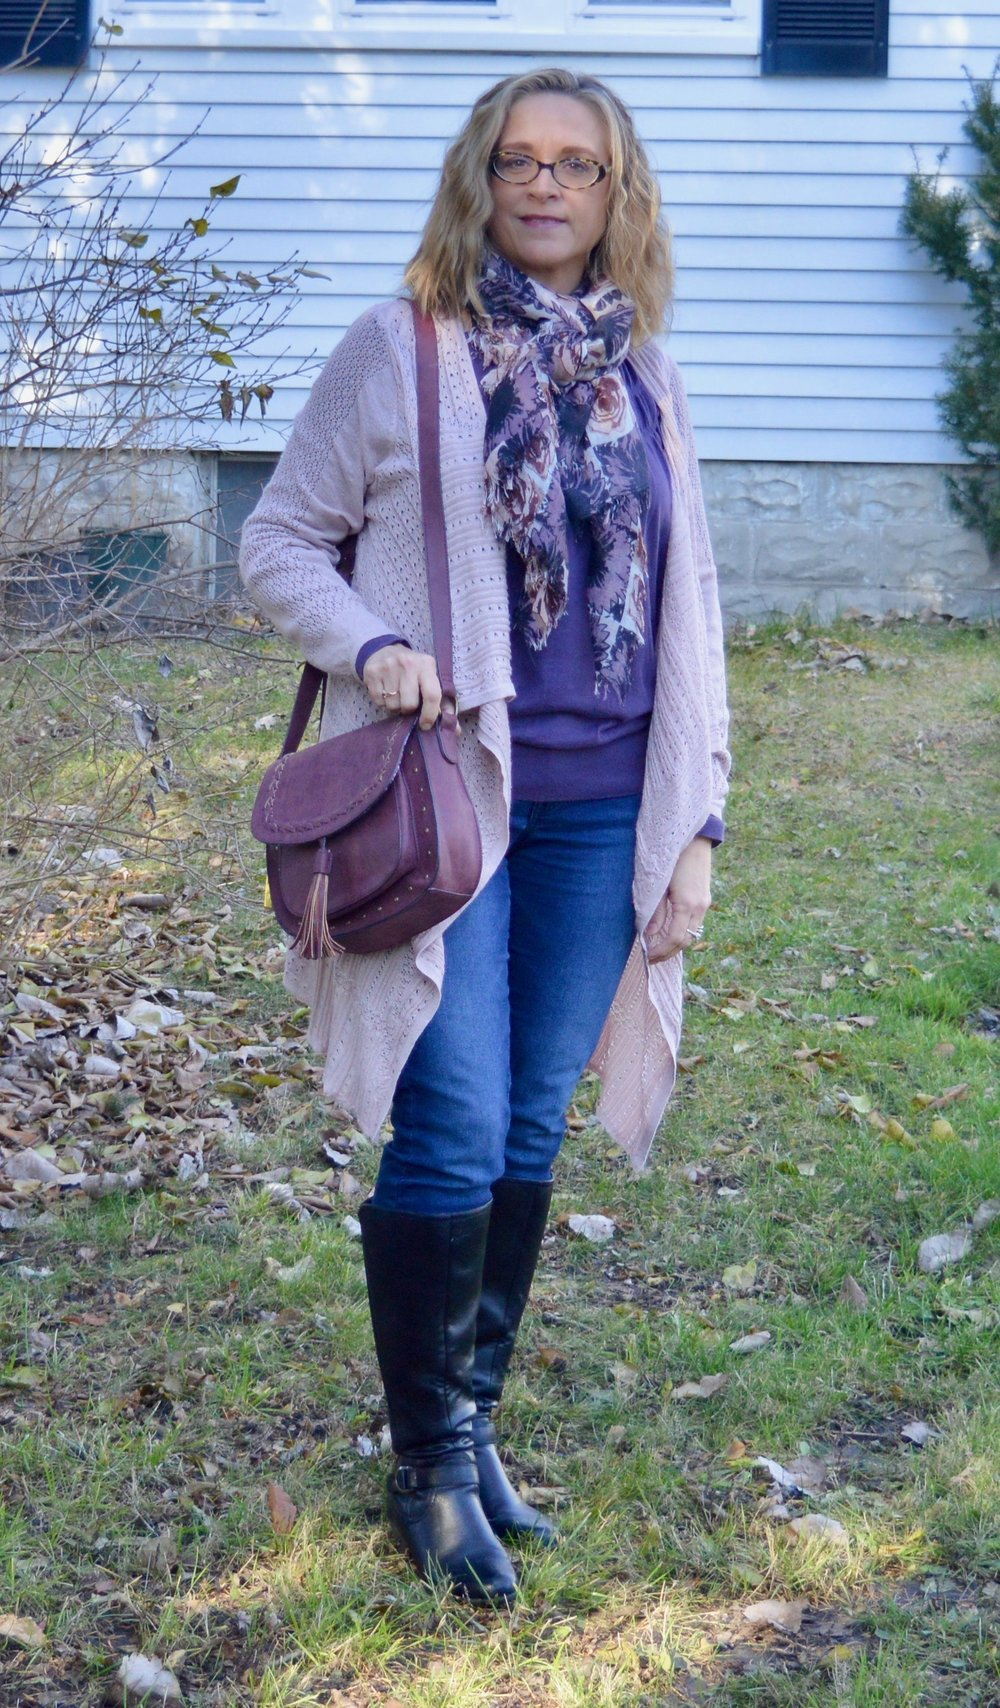 Layering Love - adding a scarf